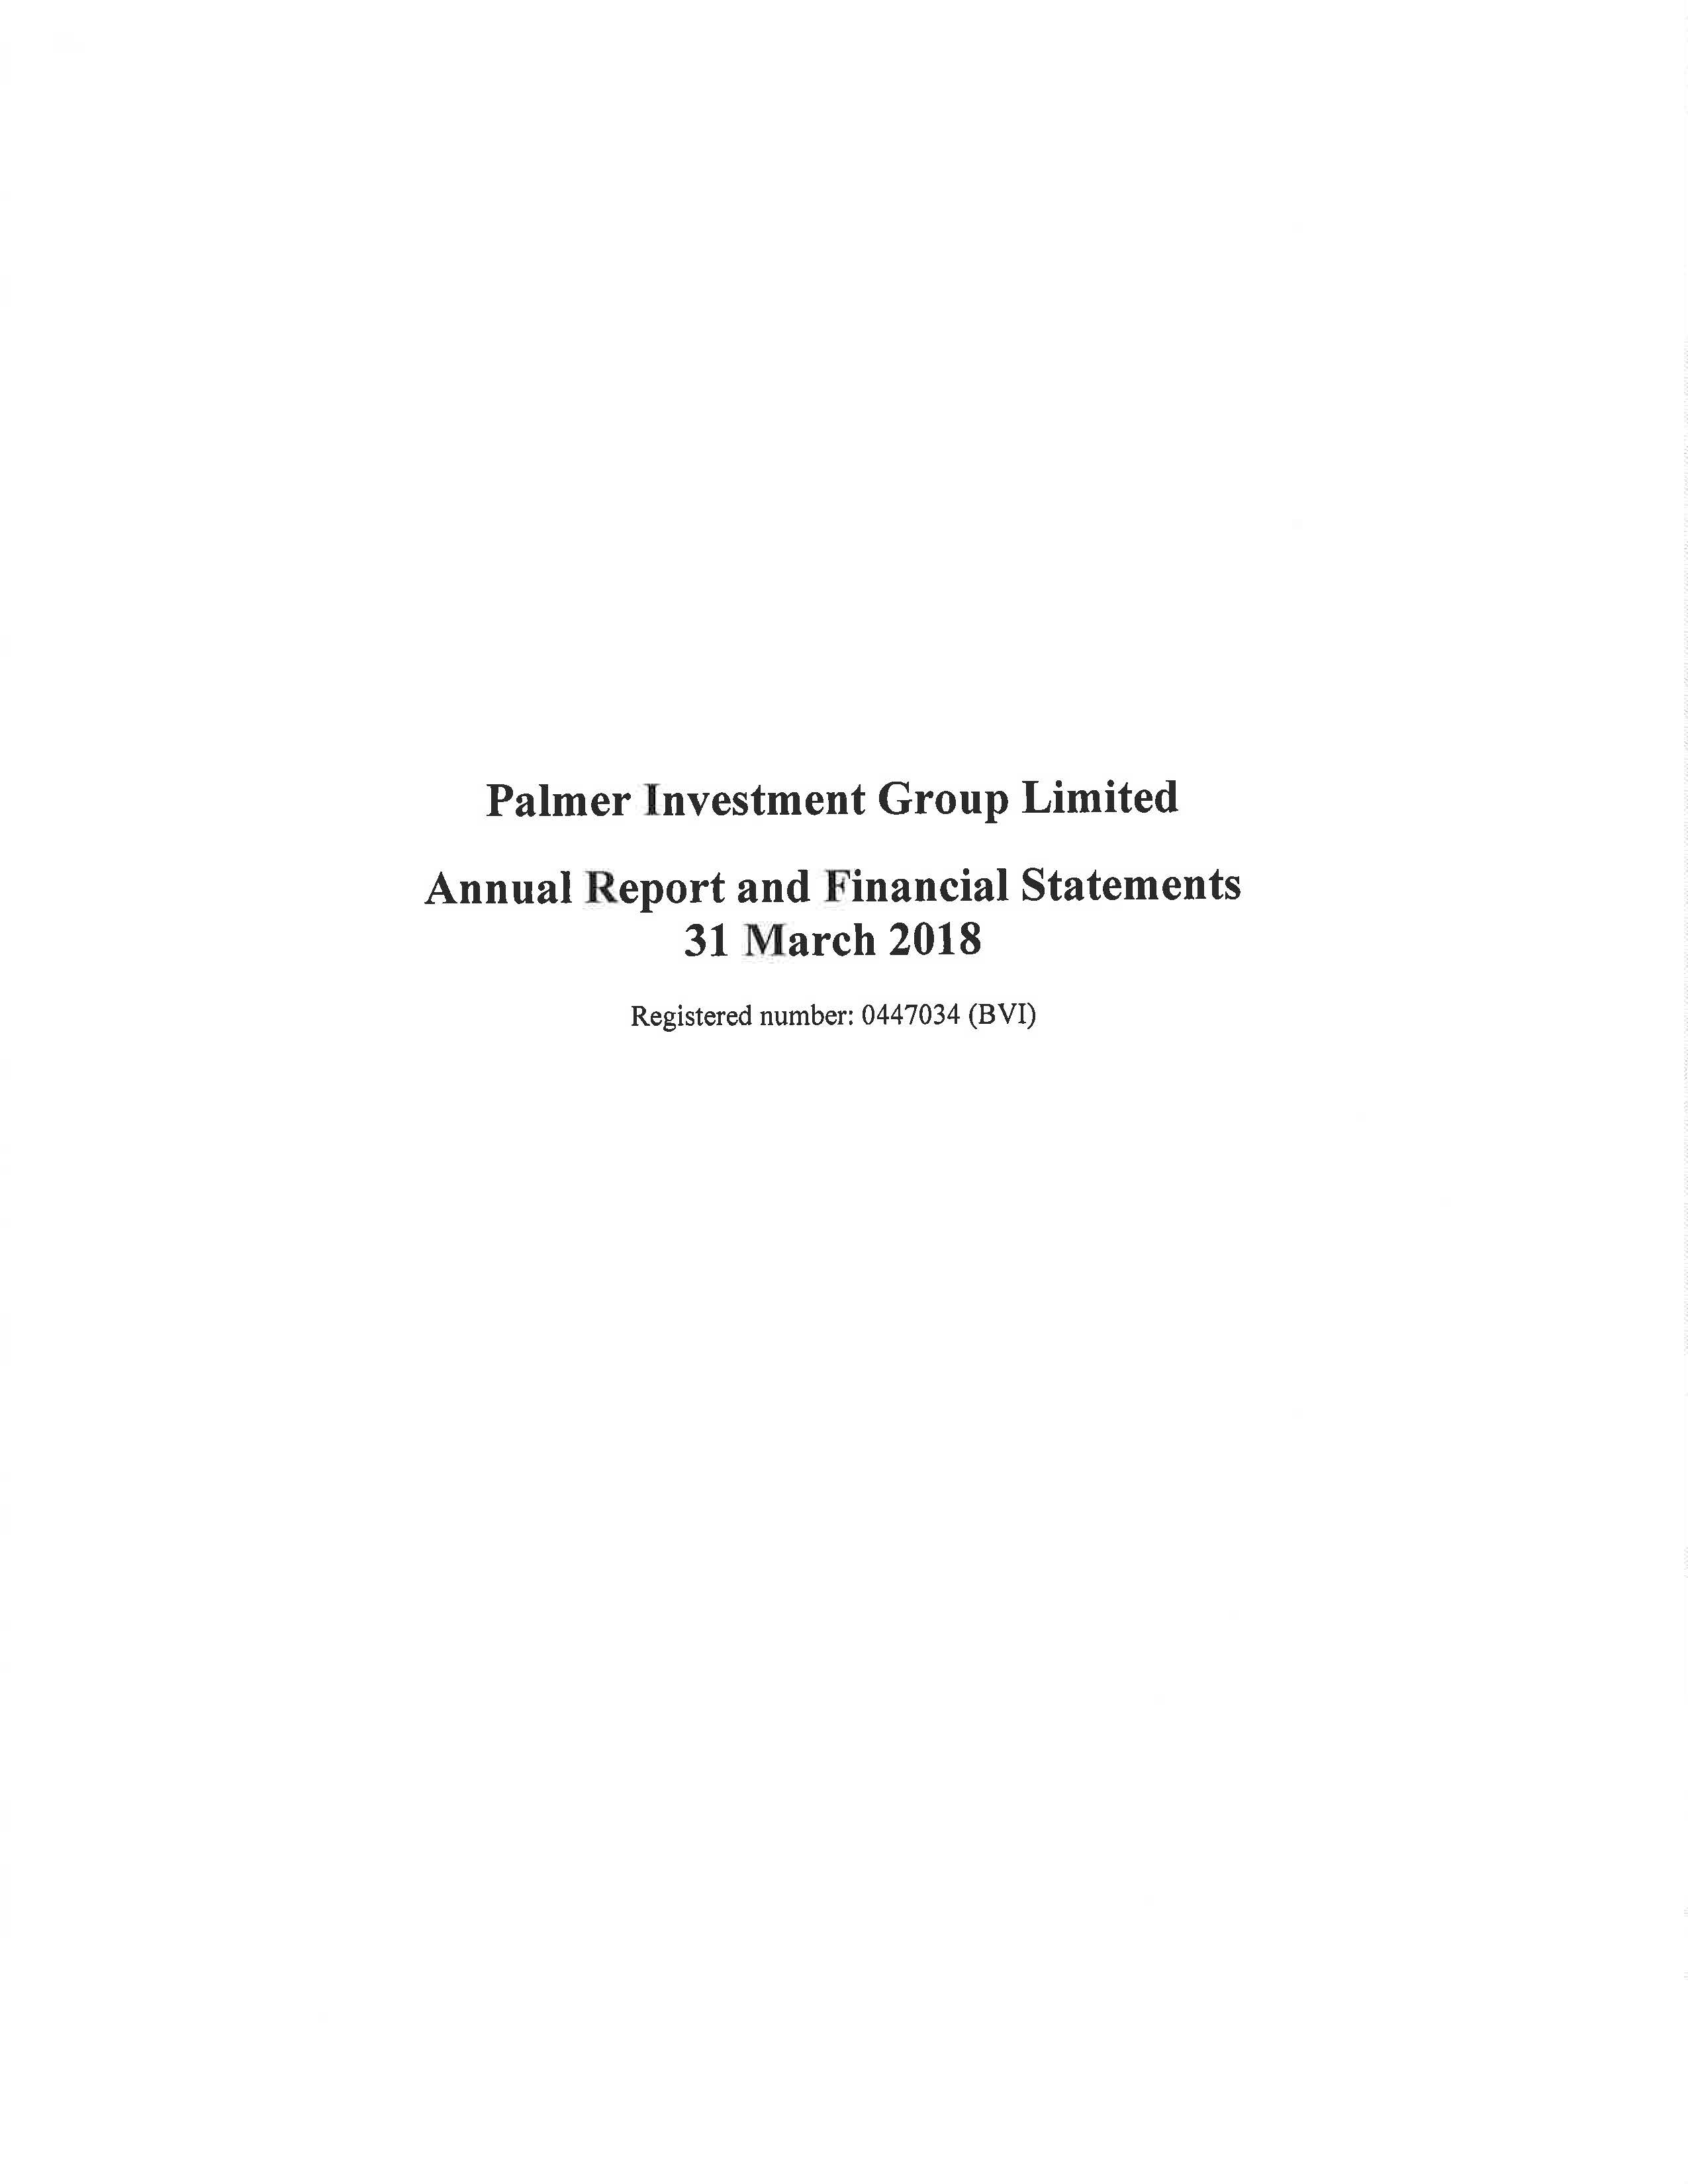 Palmer Investment Group Limited 2017-2018